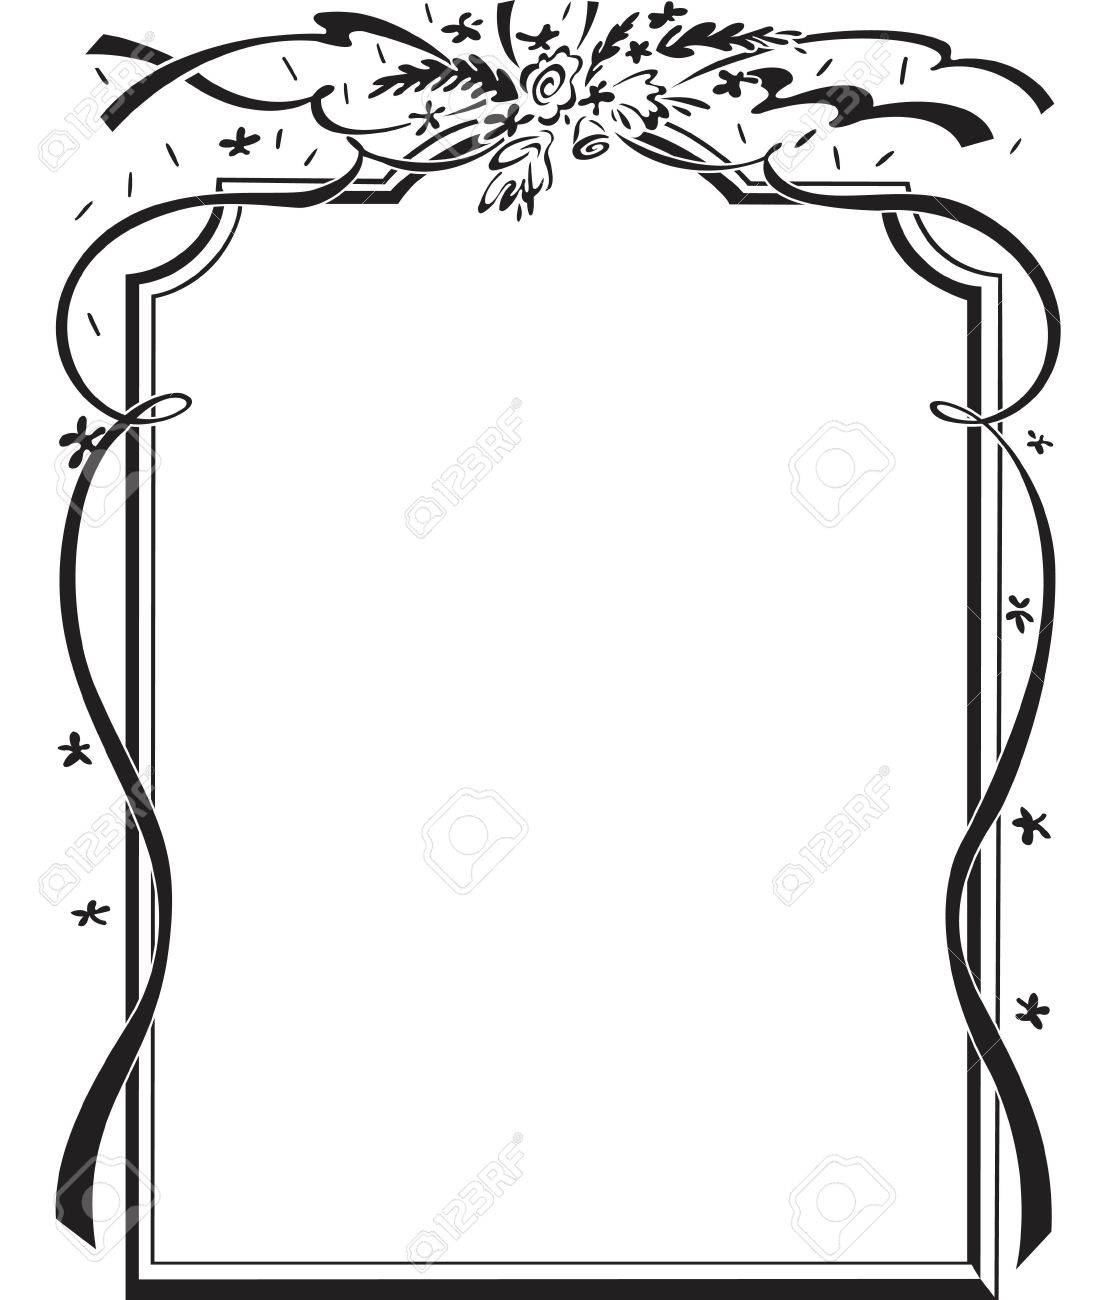 Vintage frames and design elements - with place for your text Stock Vector - 16788425